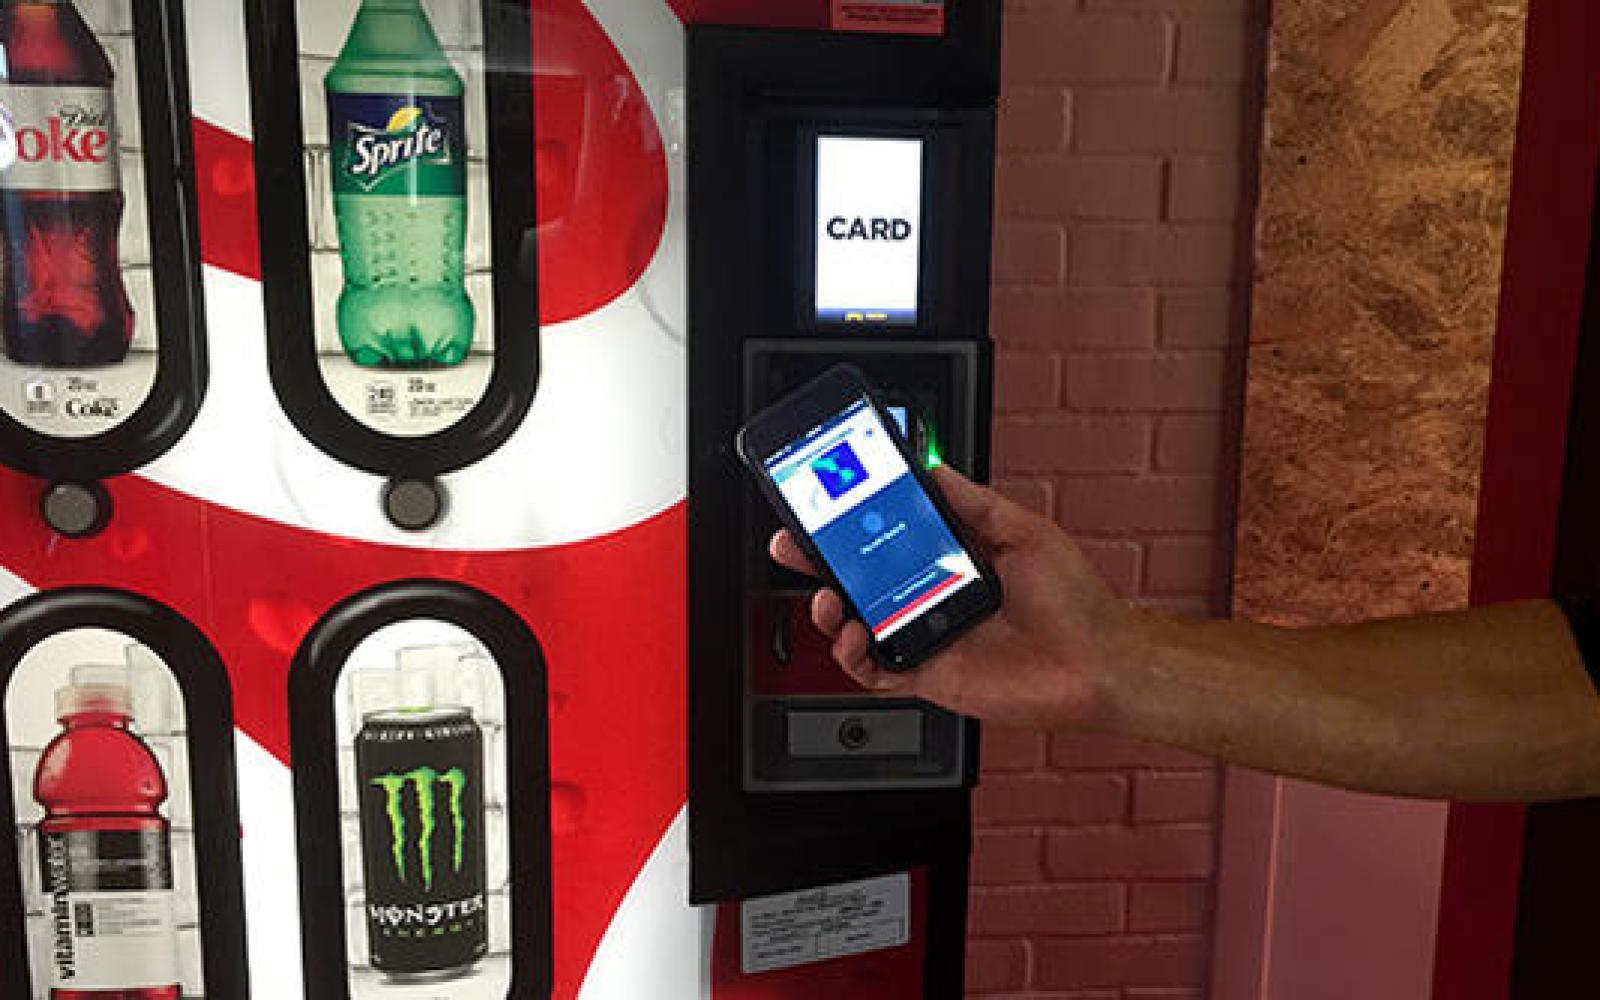 Apple Pay coming to 200,000 vending machines, kiosks, paid parking & other self-serve locations